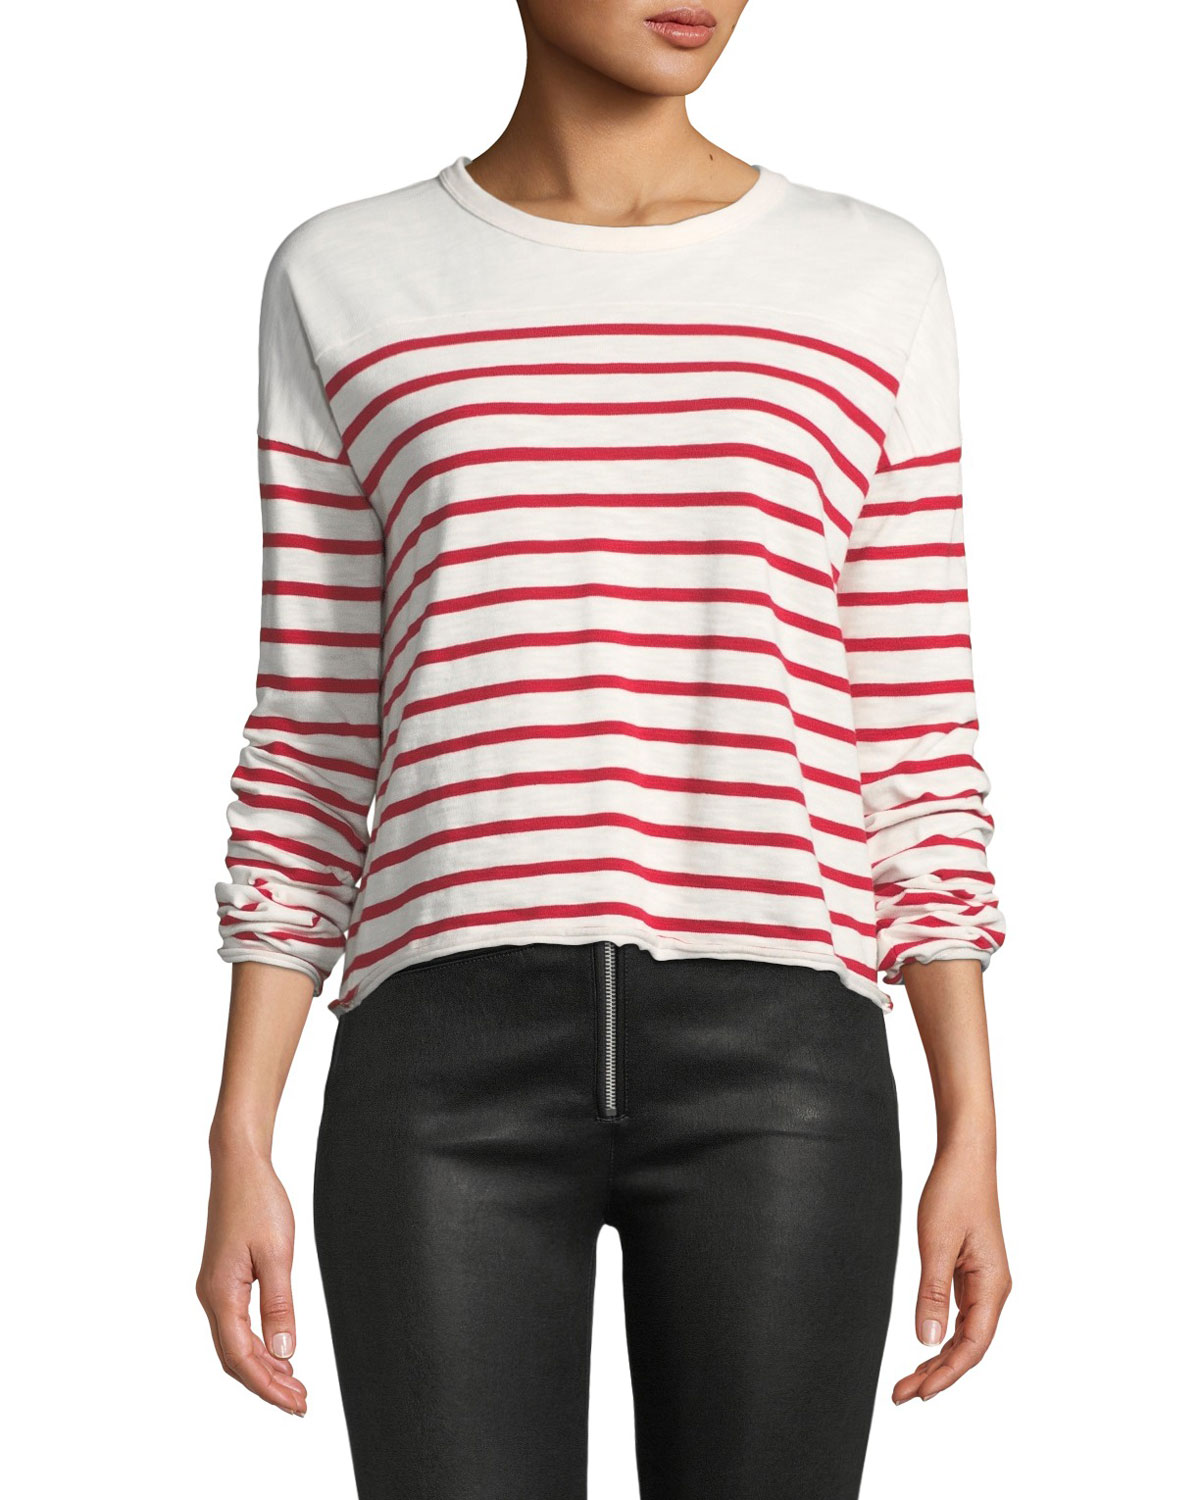 Rag And Bone White And Red Striped Halsey Long Sleeve T-Shirt, White/Red